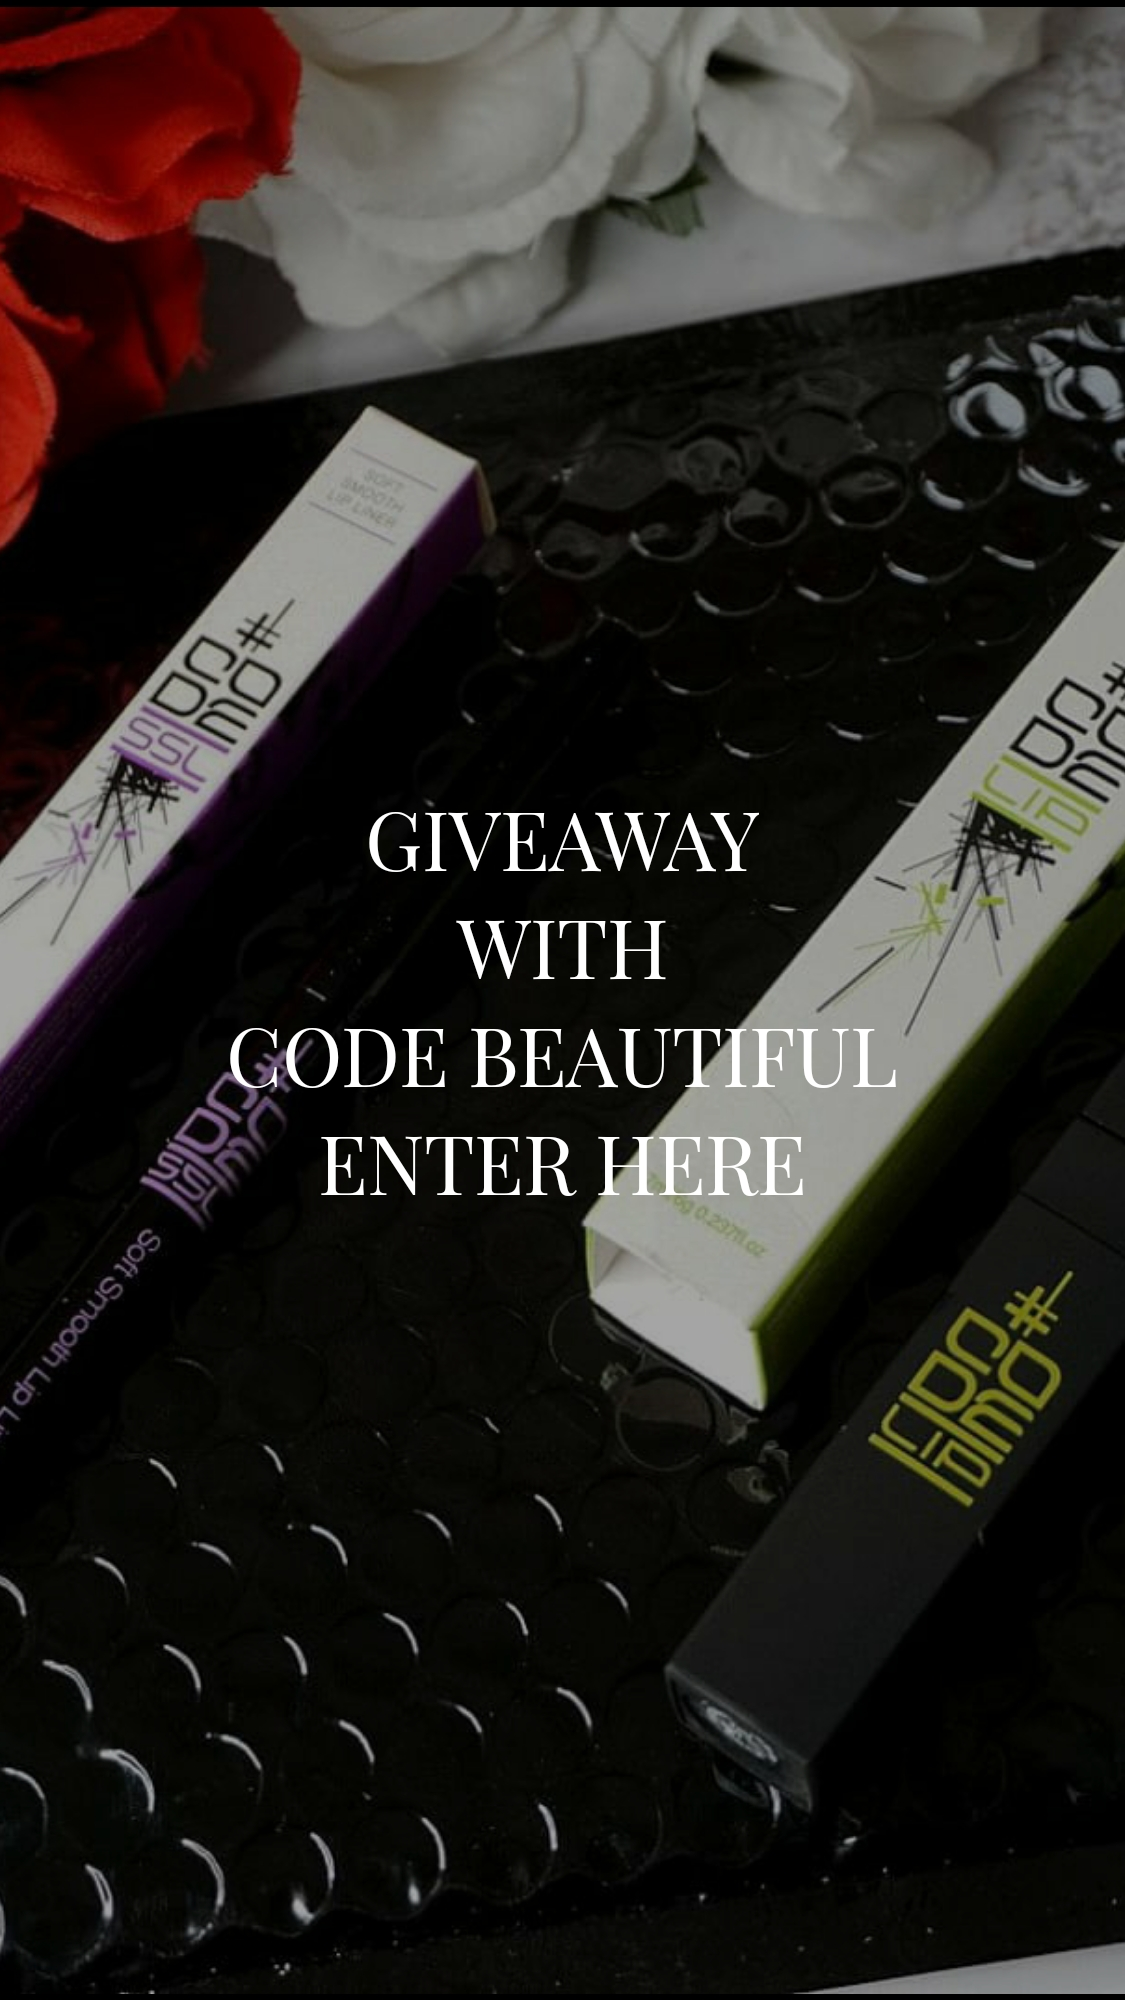 REVIEW OF THE CODE SOFT SMOOTH LIP LINER AND CODE LIP INTENSE PLUMPER BY CODE BEAUTIFUL